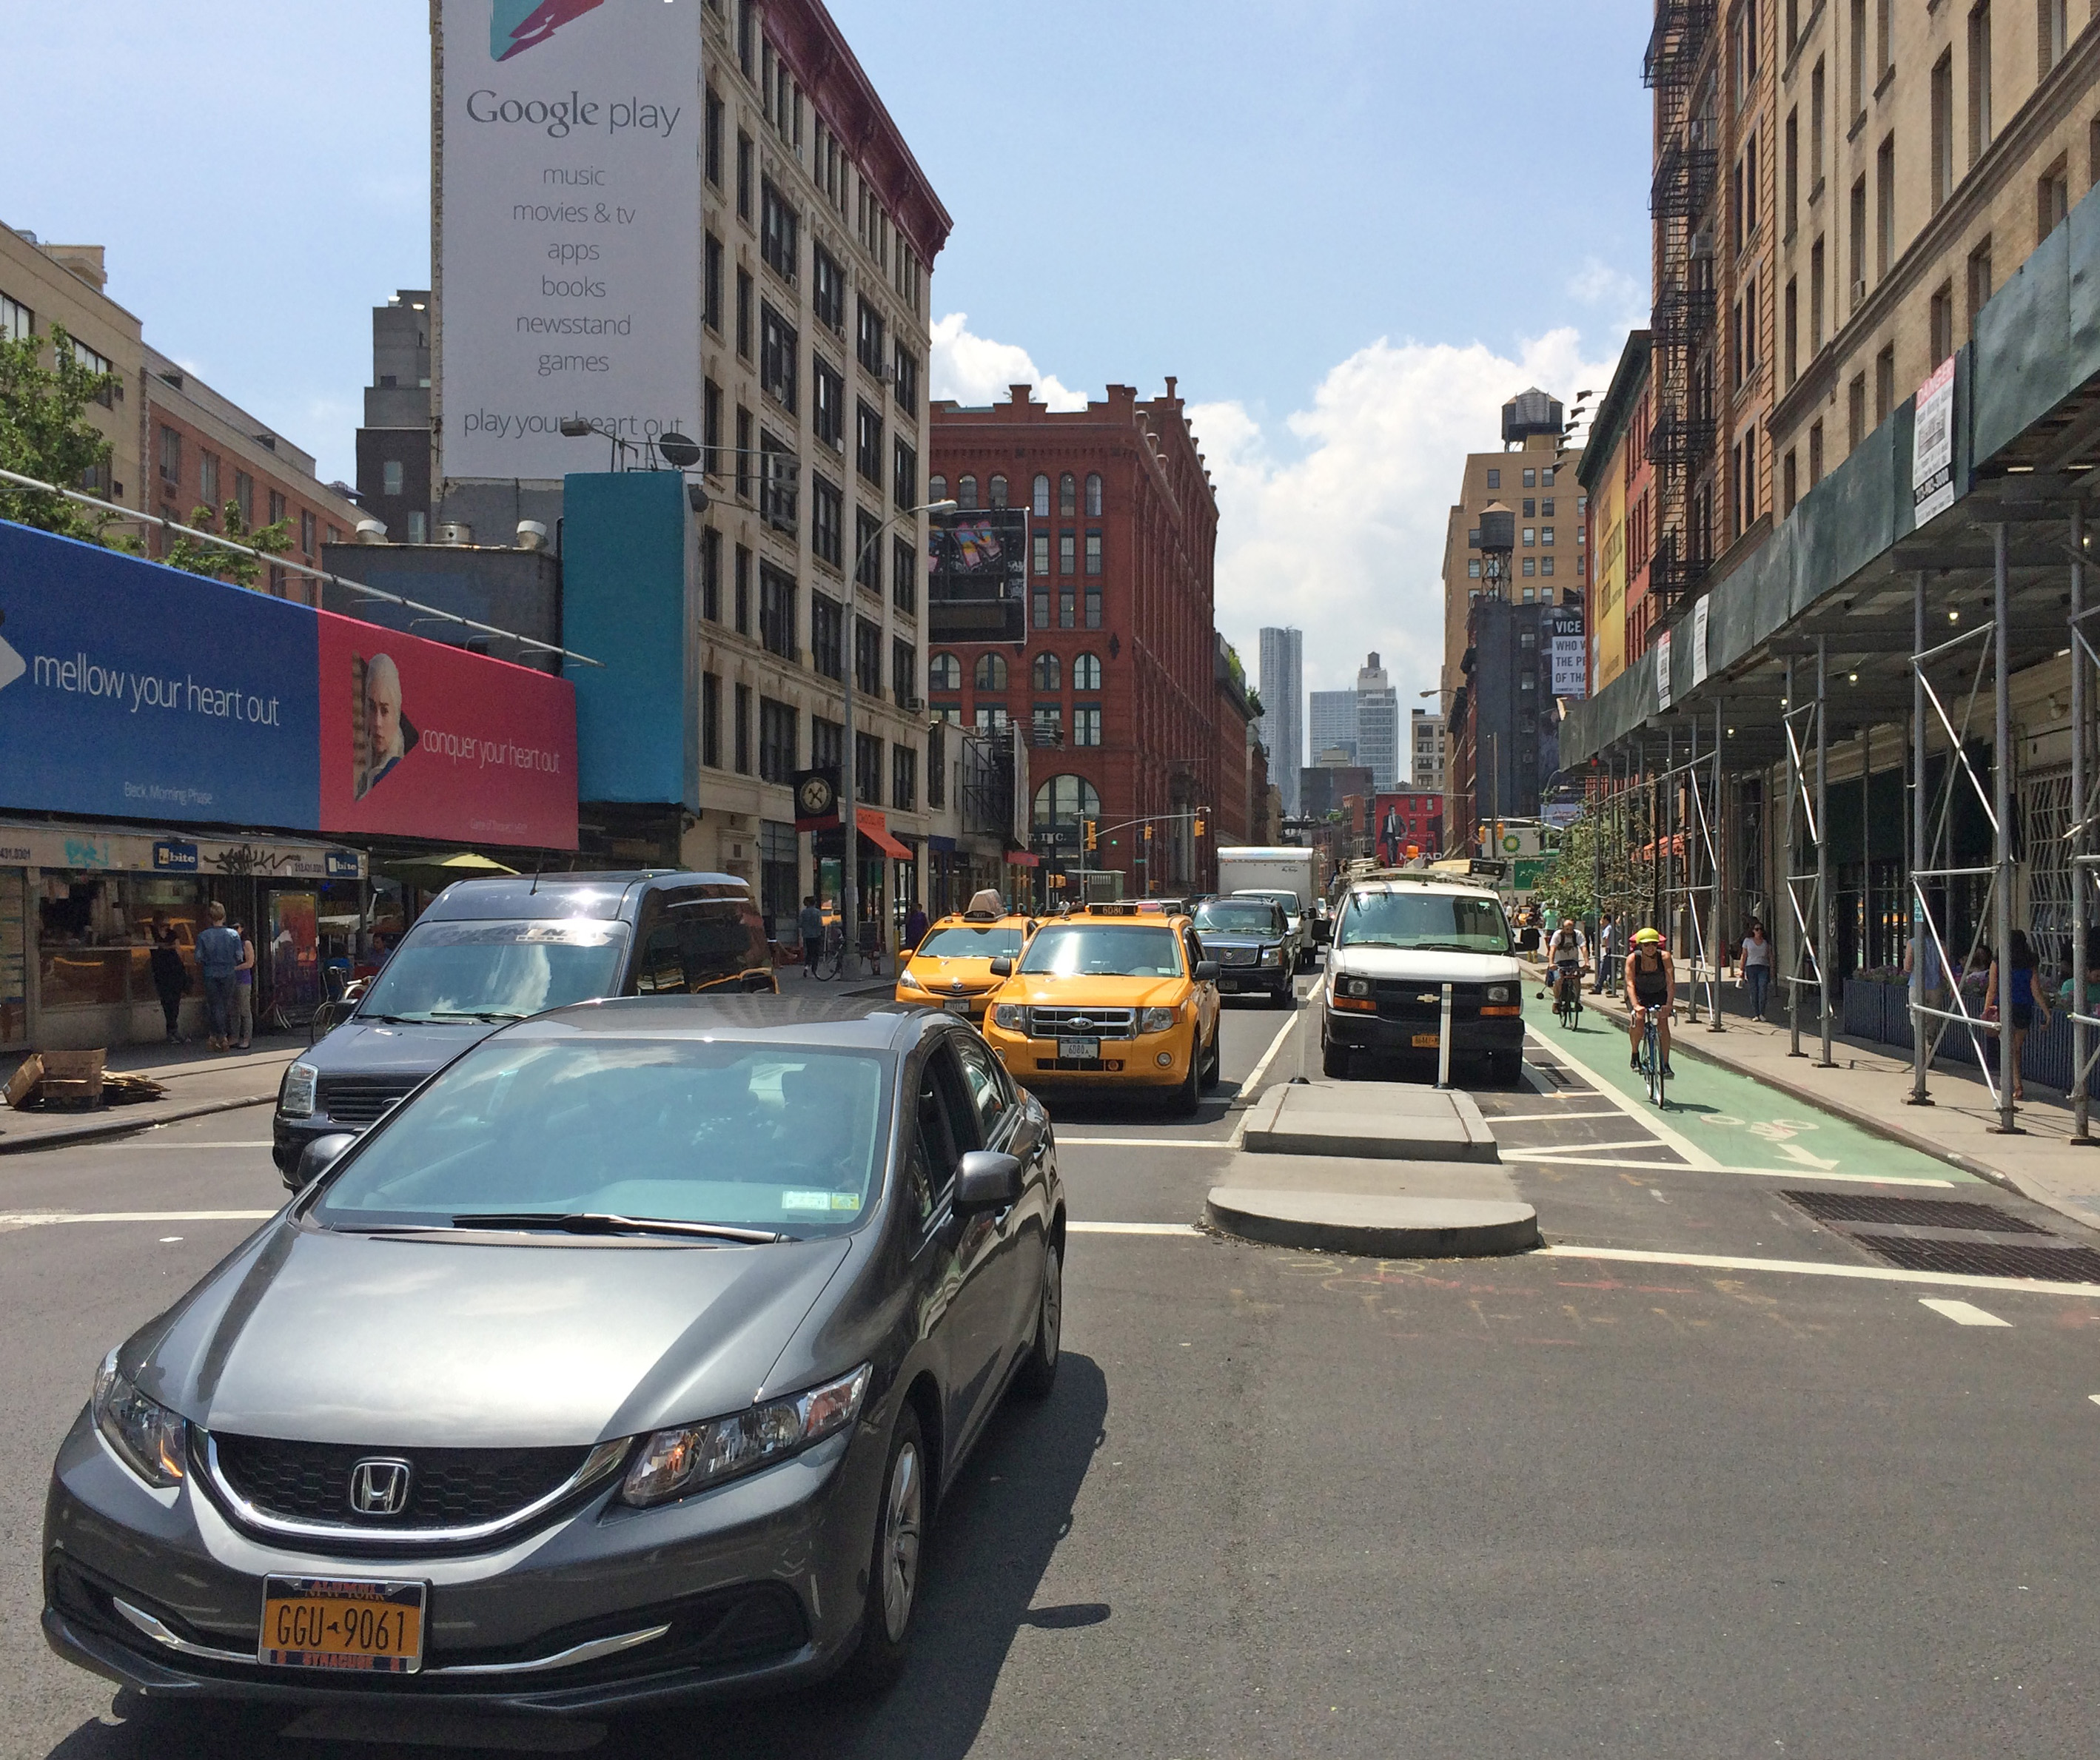 Lafayette Street, looking south from Bleecker Street.